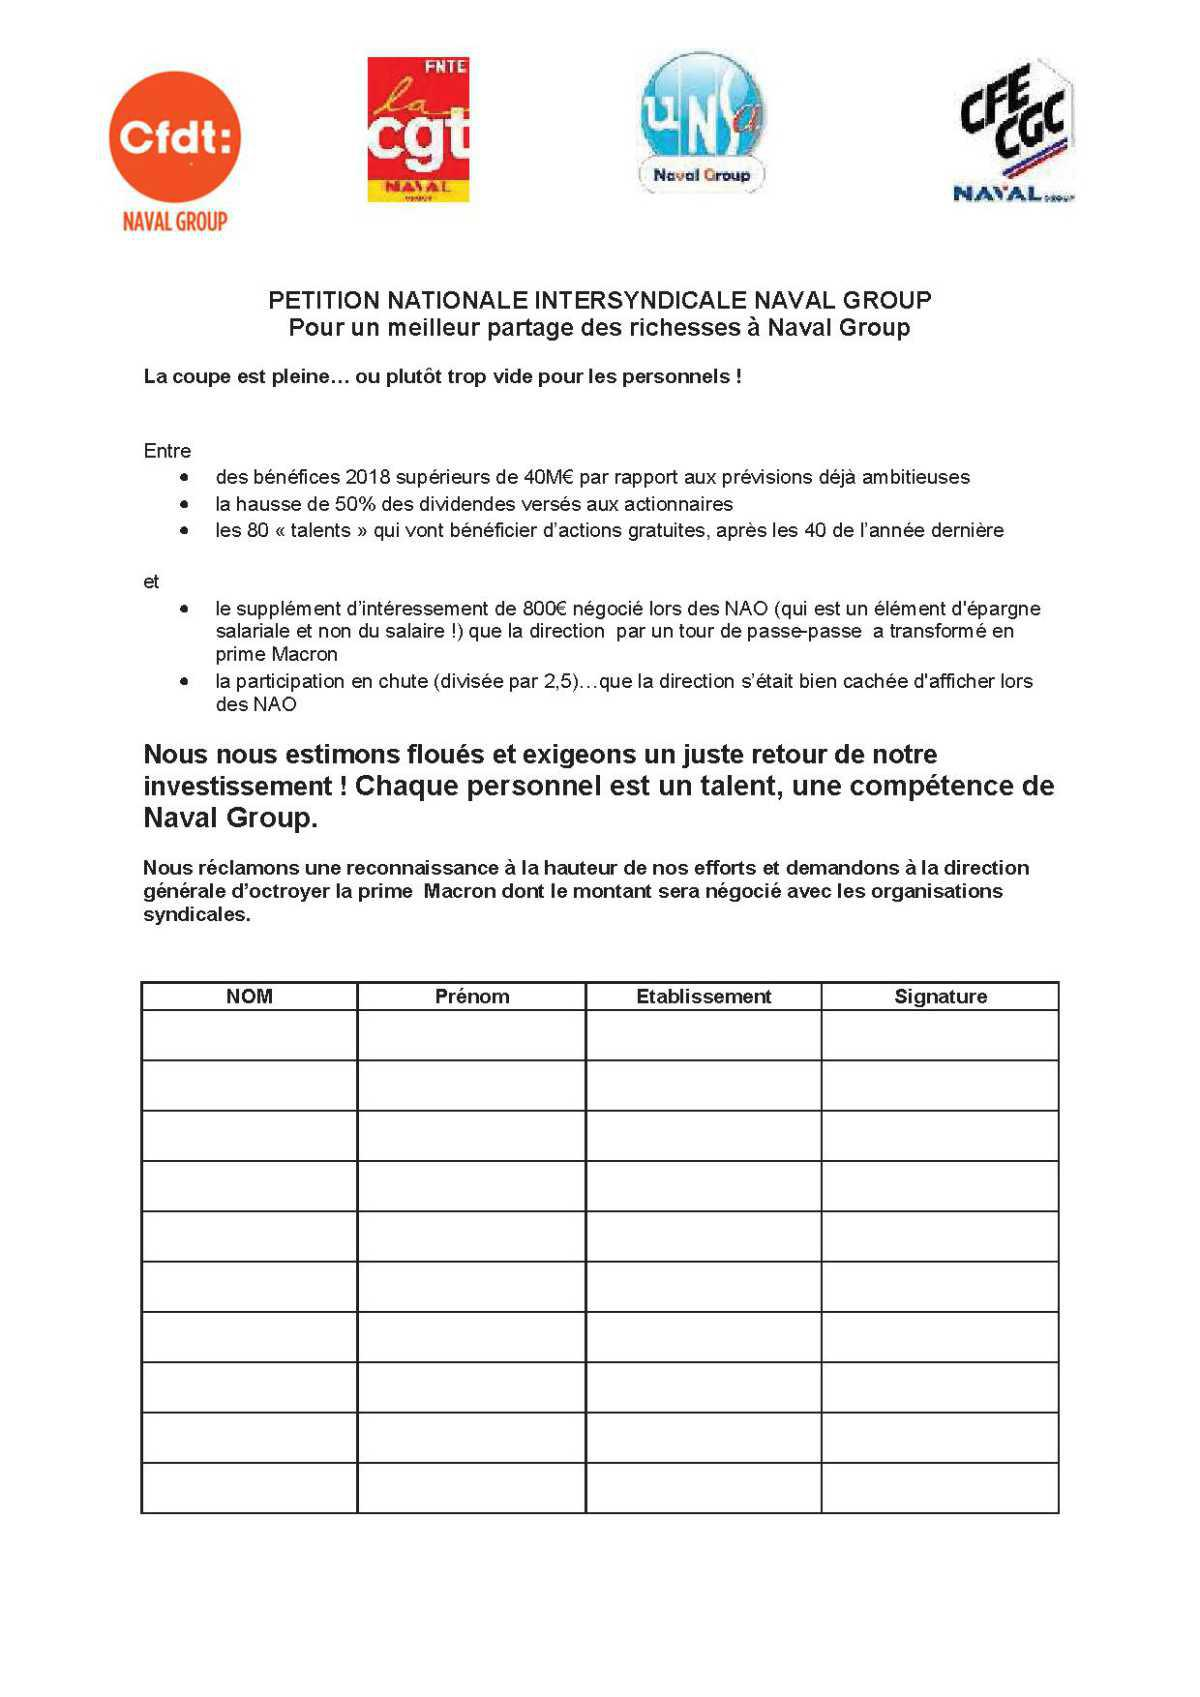 PETITION NATIONALE INTERSYNDICALE NAVAL GROUP